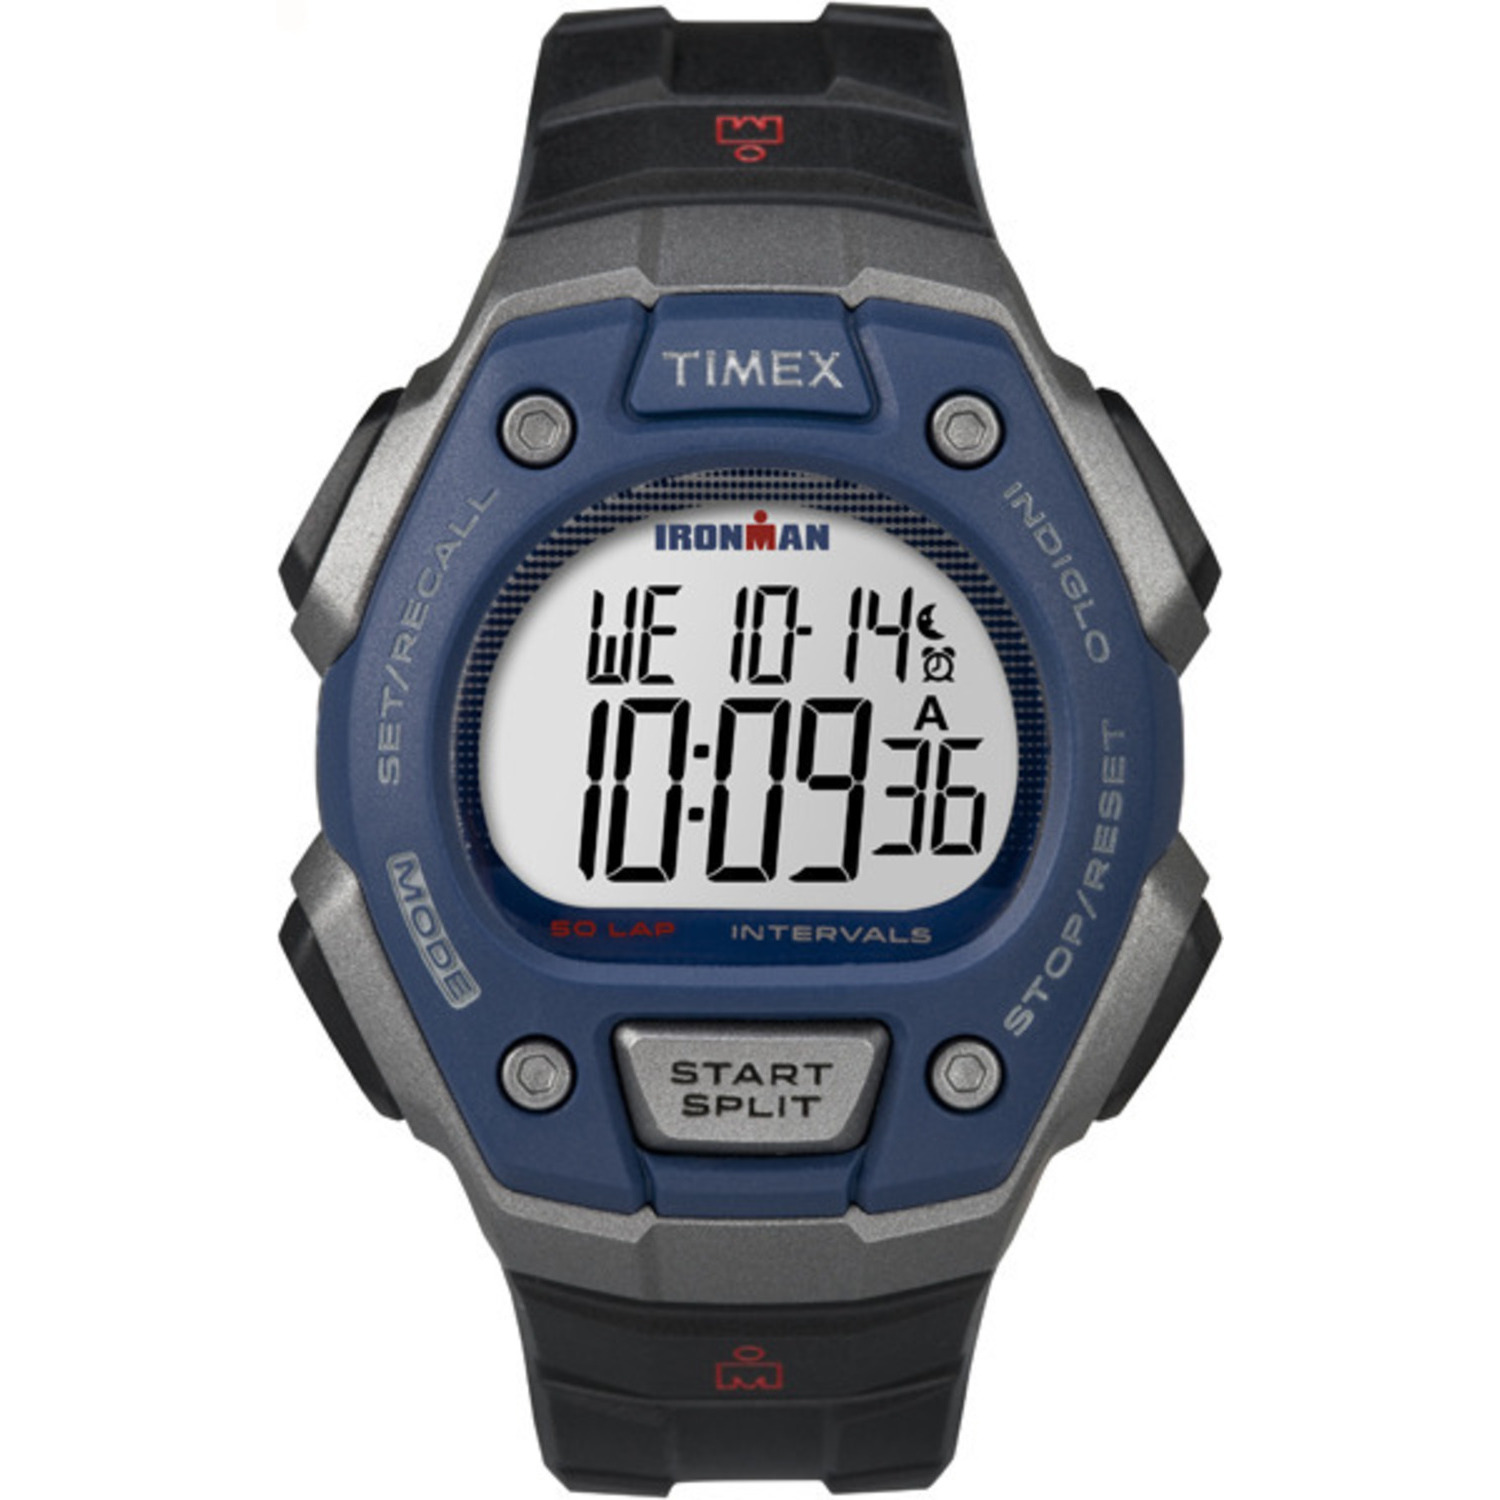 timex ironman men 039 s sport watch classic 50 lap timer timex ironman men 039 s sport watch classic